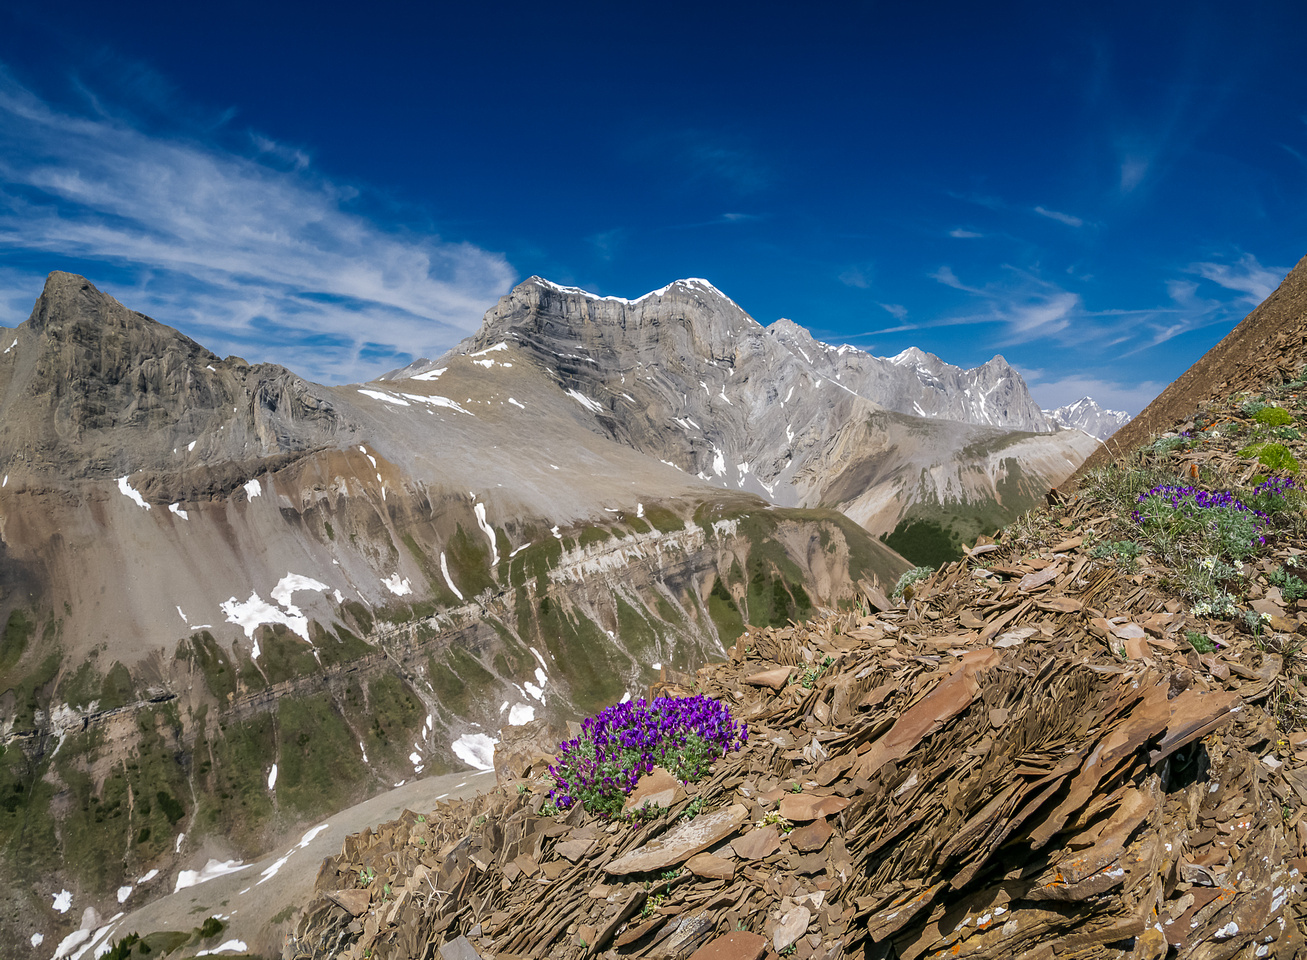 Awesome scenery continues on the brown shale. This is looking towards the Palliser Range which only has one named summit